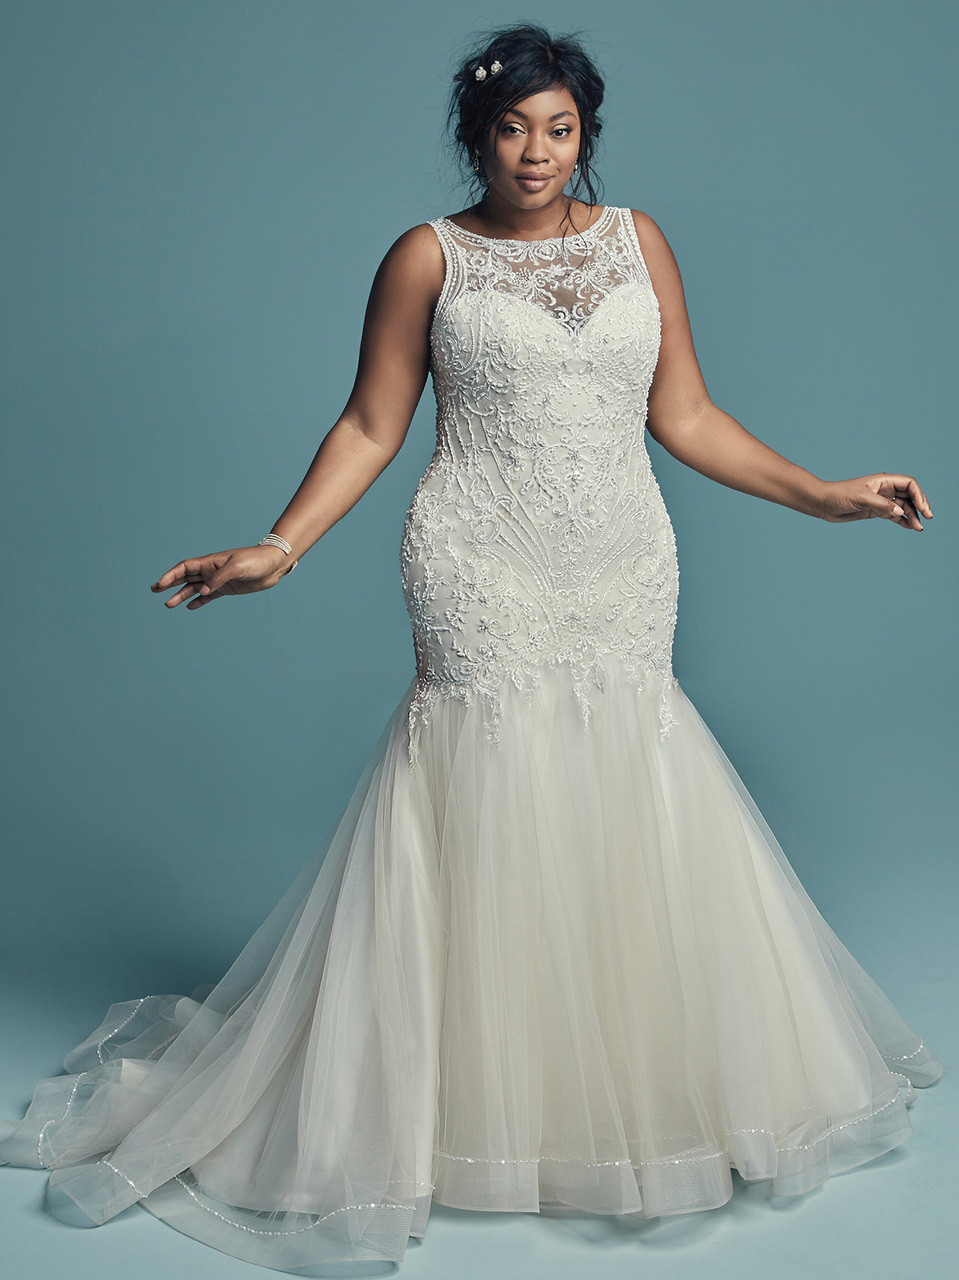 441f3c5ecaba Fit And Flare plus size wedding gown Maggie Sottero Ariella Marie